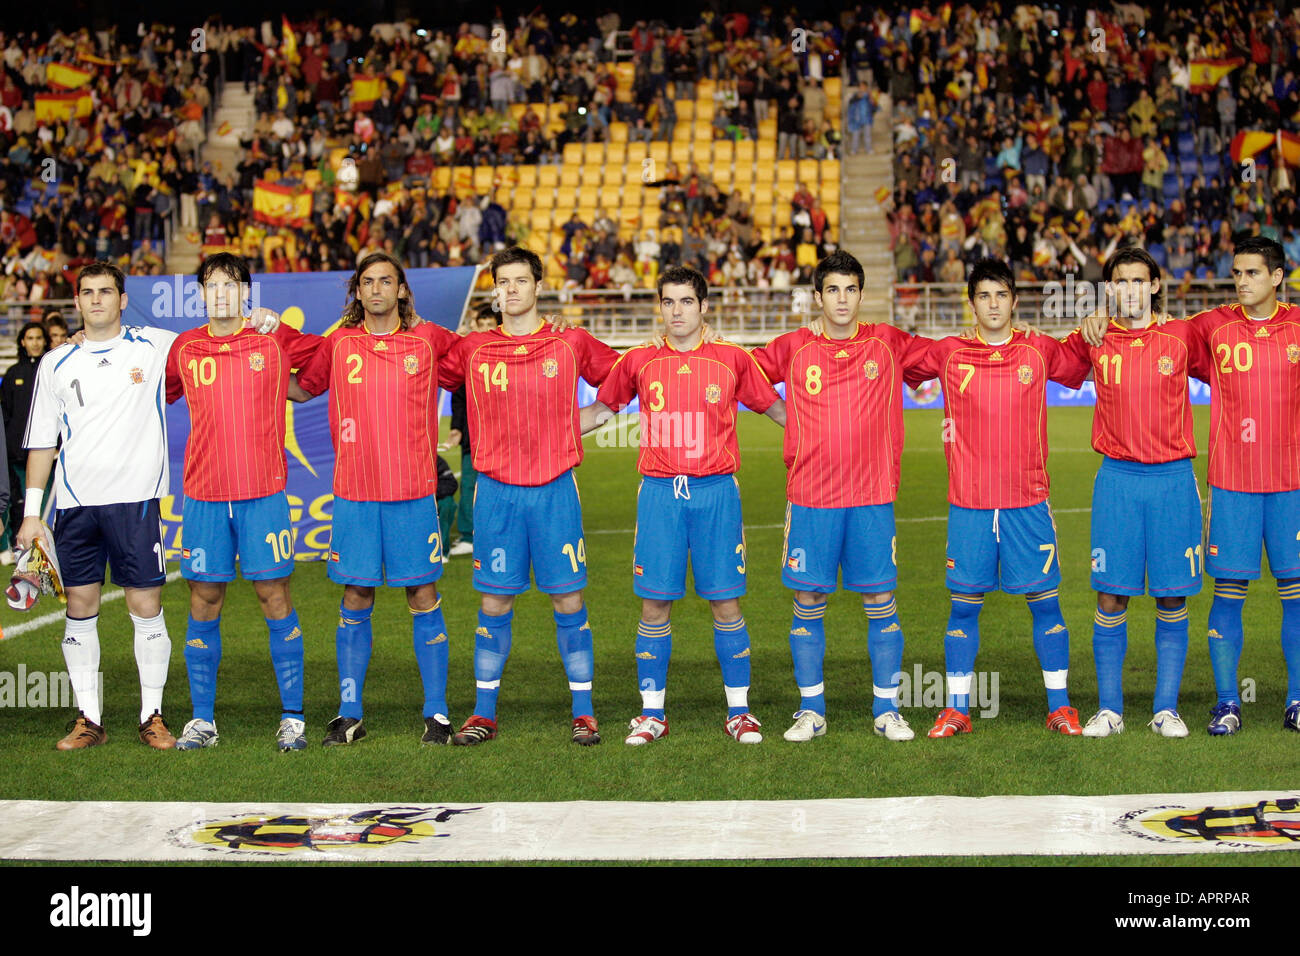 Hilo de la selección de España The-spanish-squad-embracing-while-hearing-the-national-anthem-APRPAR